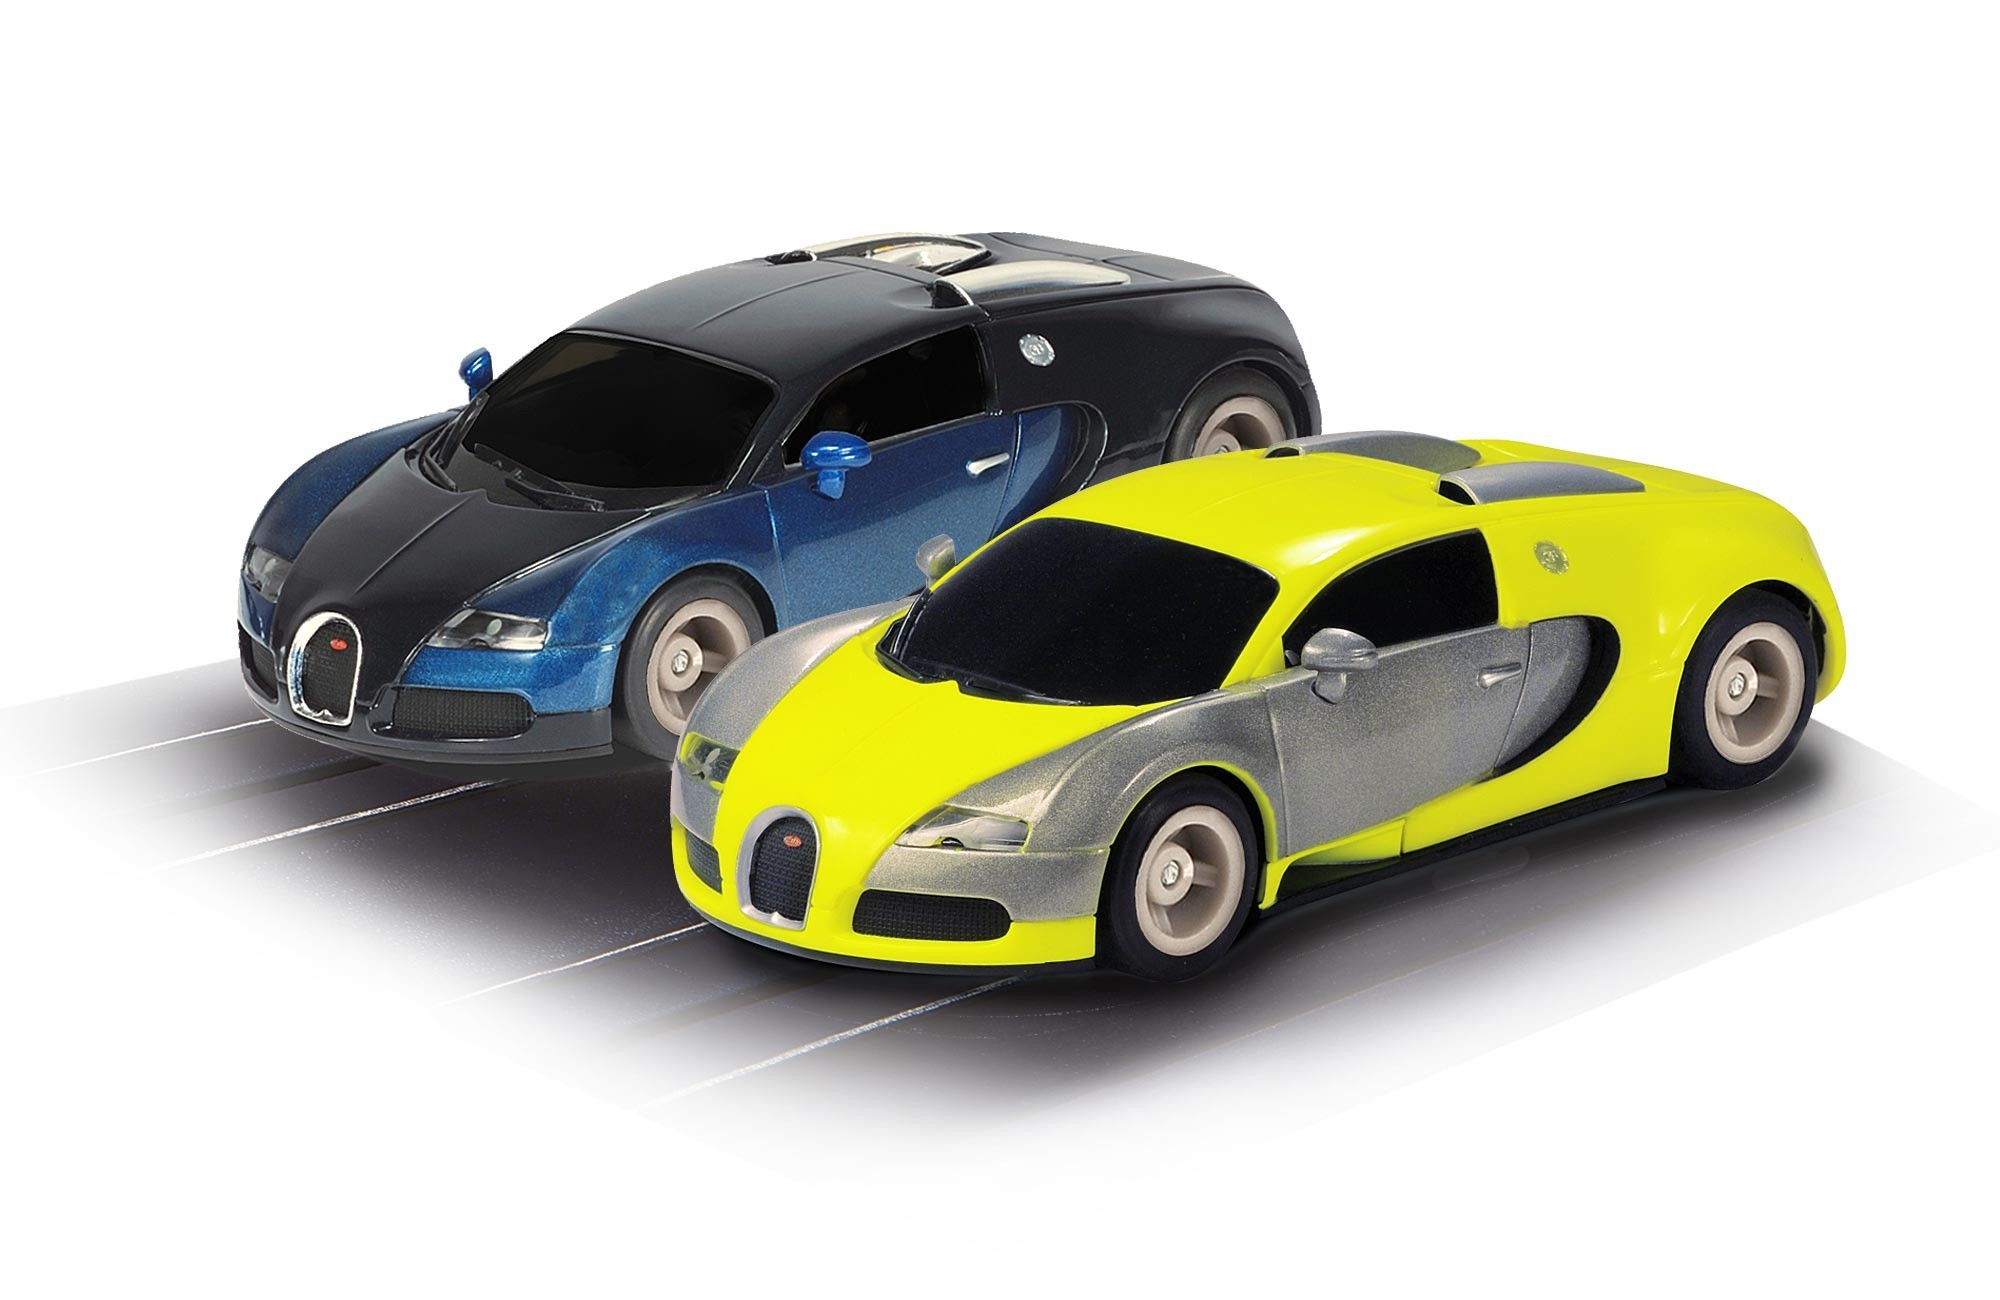 micro scalextric hyper cars scalextric scag1108 circuit voiture. Black Bedroom Furniture Sets. Home Design Ideas